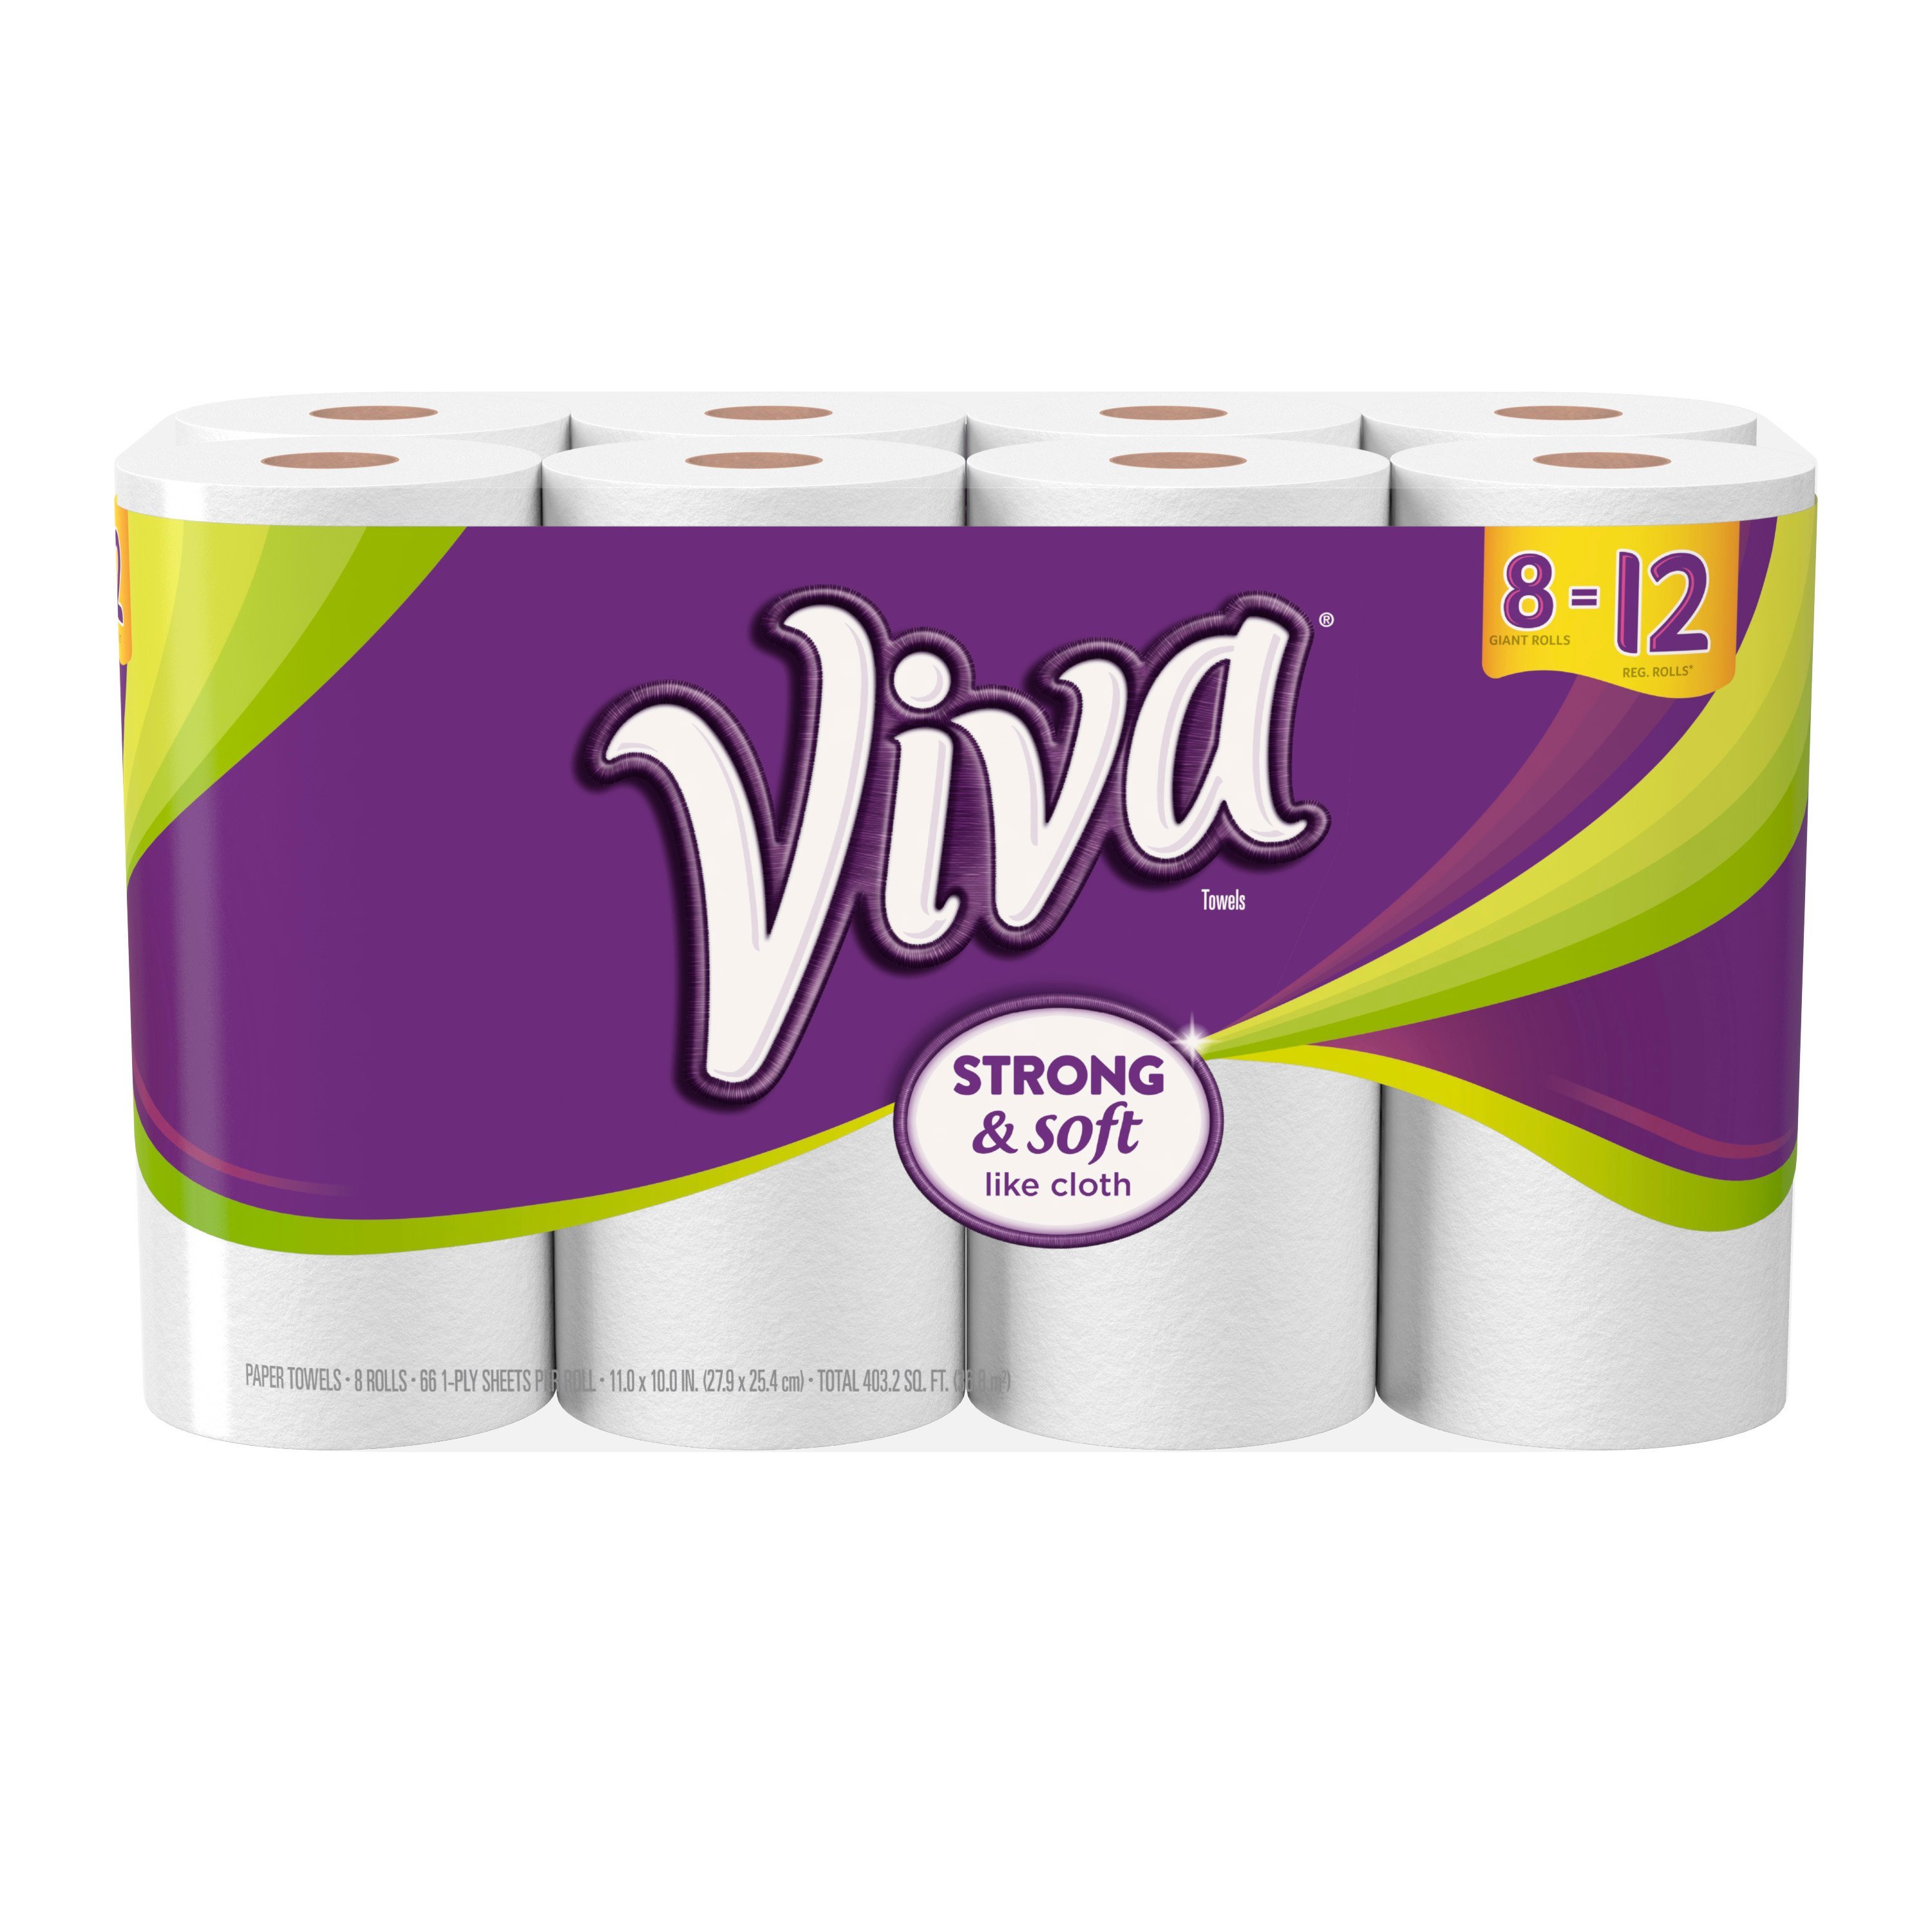 Viva White Paper Towel Giant Rolls - Shop Paper Towels at ...